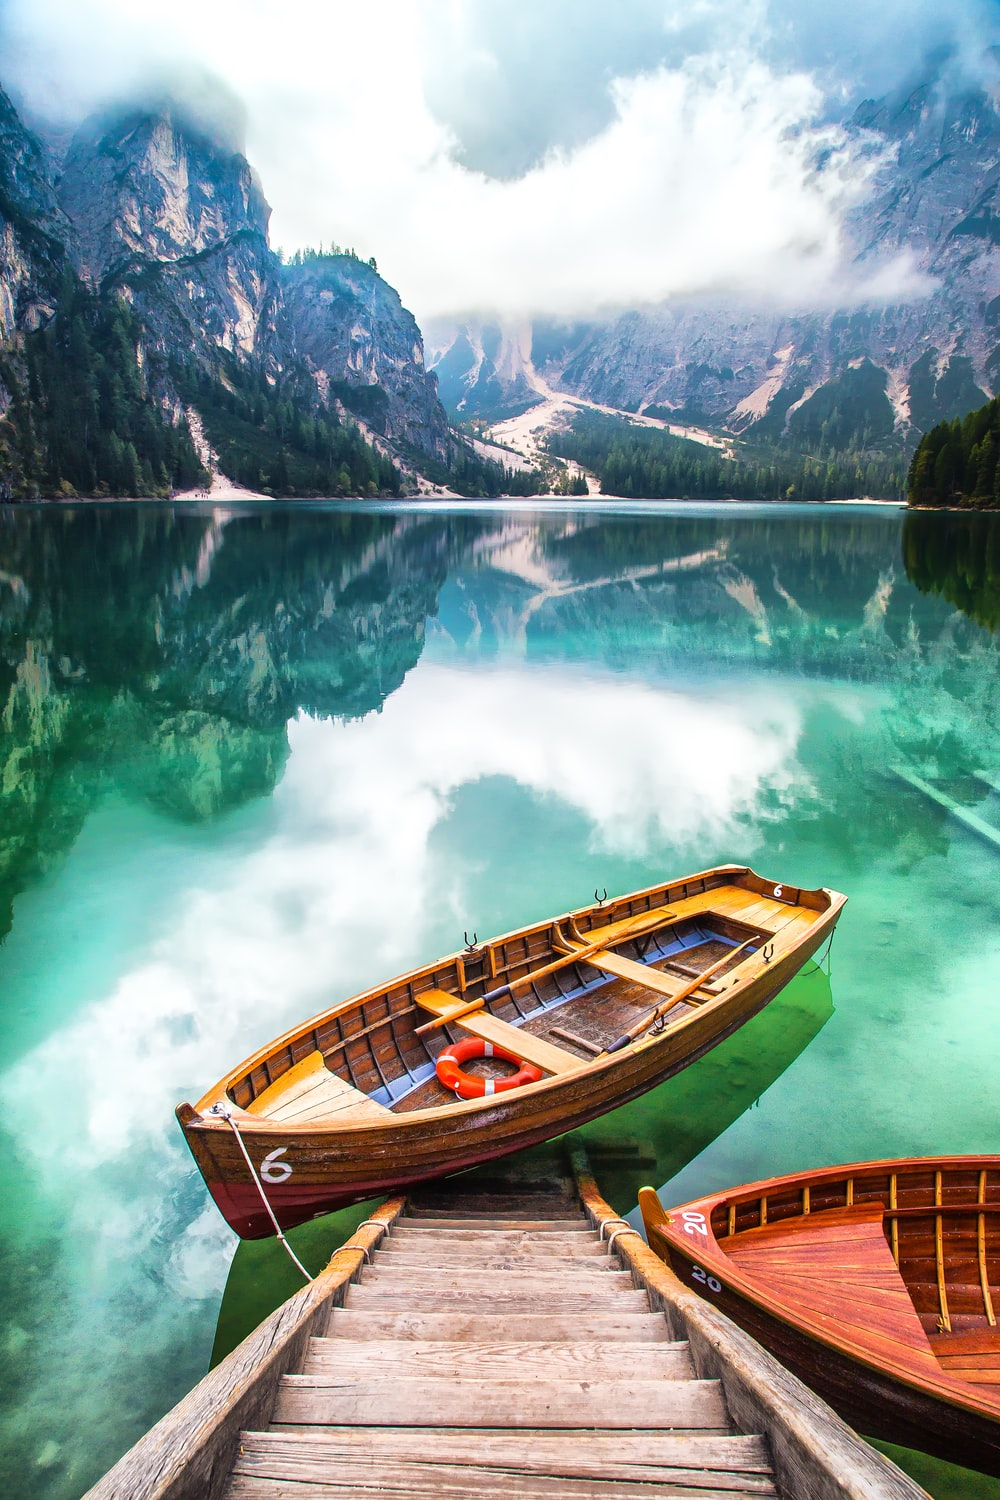 brown gondola on body of water